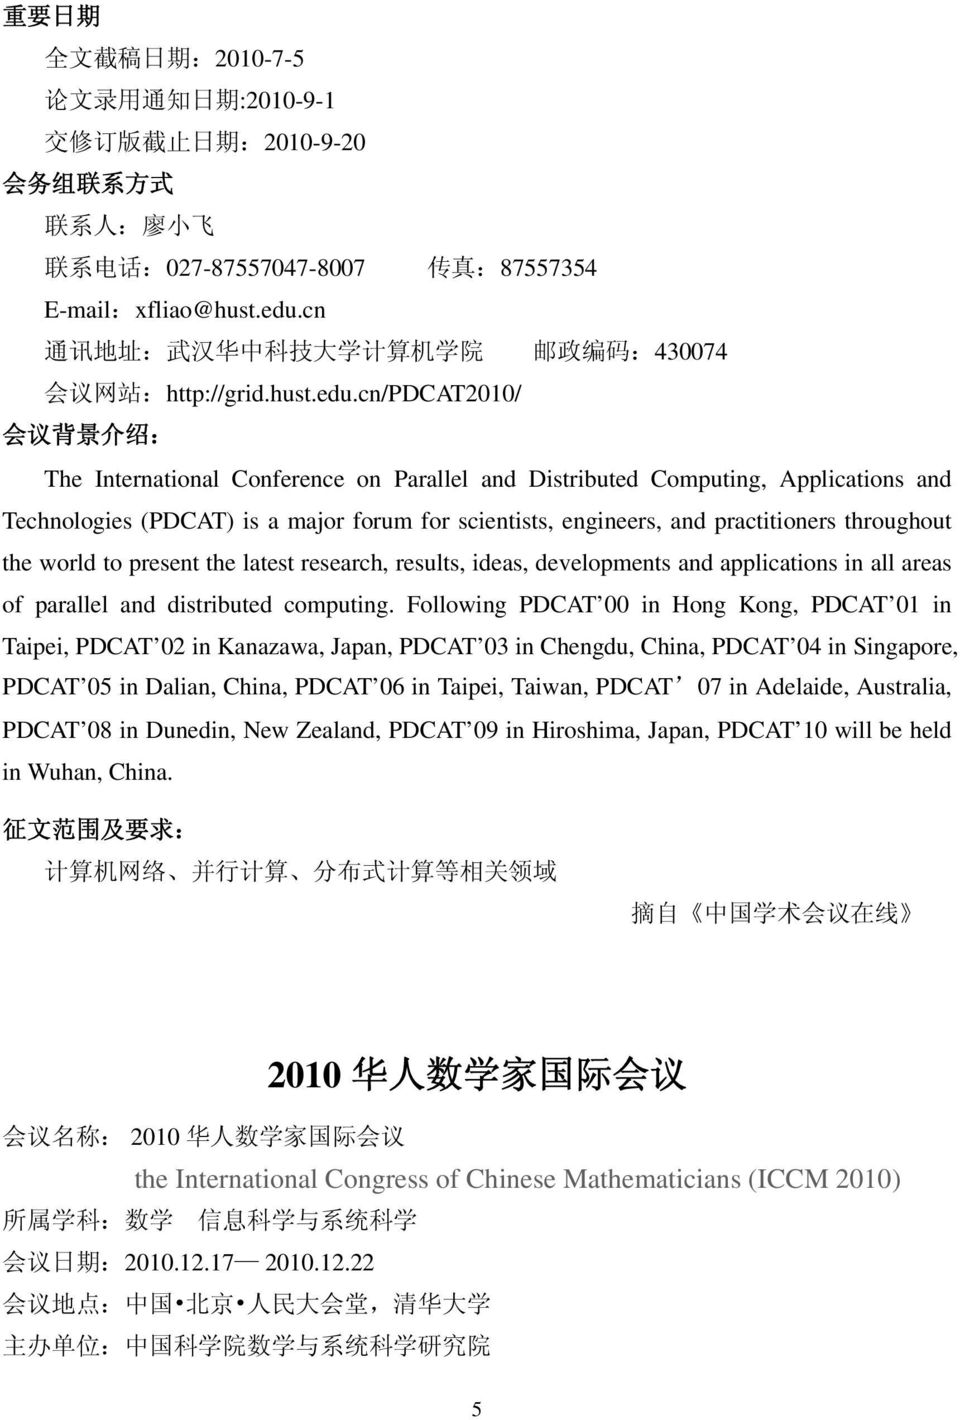 cn/pdcat2010/ 会 议 背 景 介 绍 : The International Conference on Parallel and Distributed Computing, Applications and Technologies (PDCAT) is a major forum for scientists, engineers, and practitioners